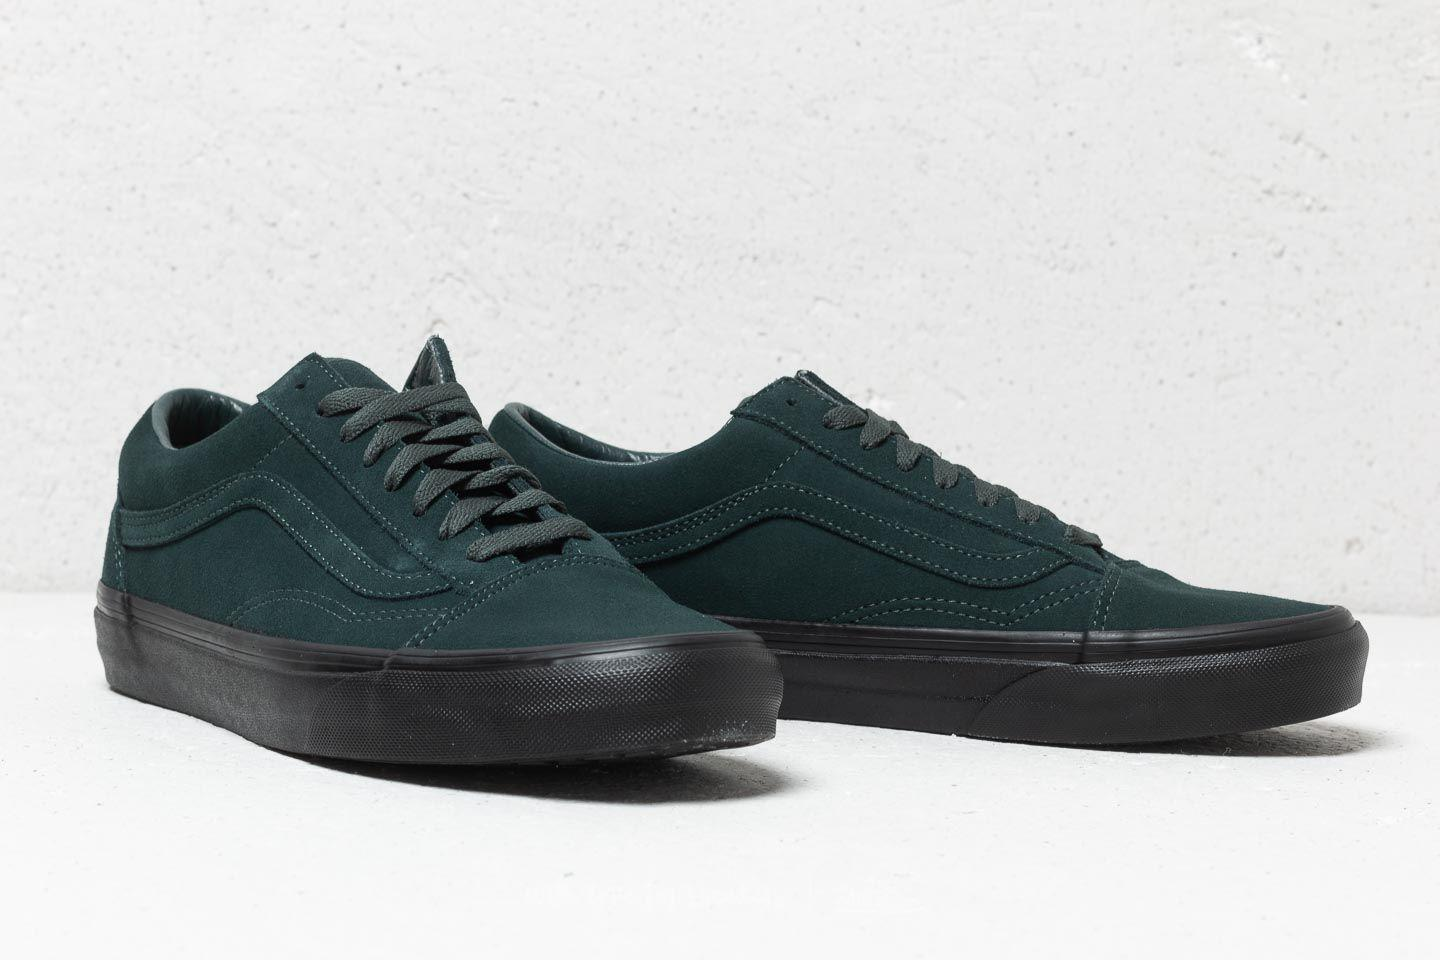 Lyst - Vans Old Skool (black Outsole) Darkest Spruce  Black in Black ... 0da1b3613